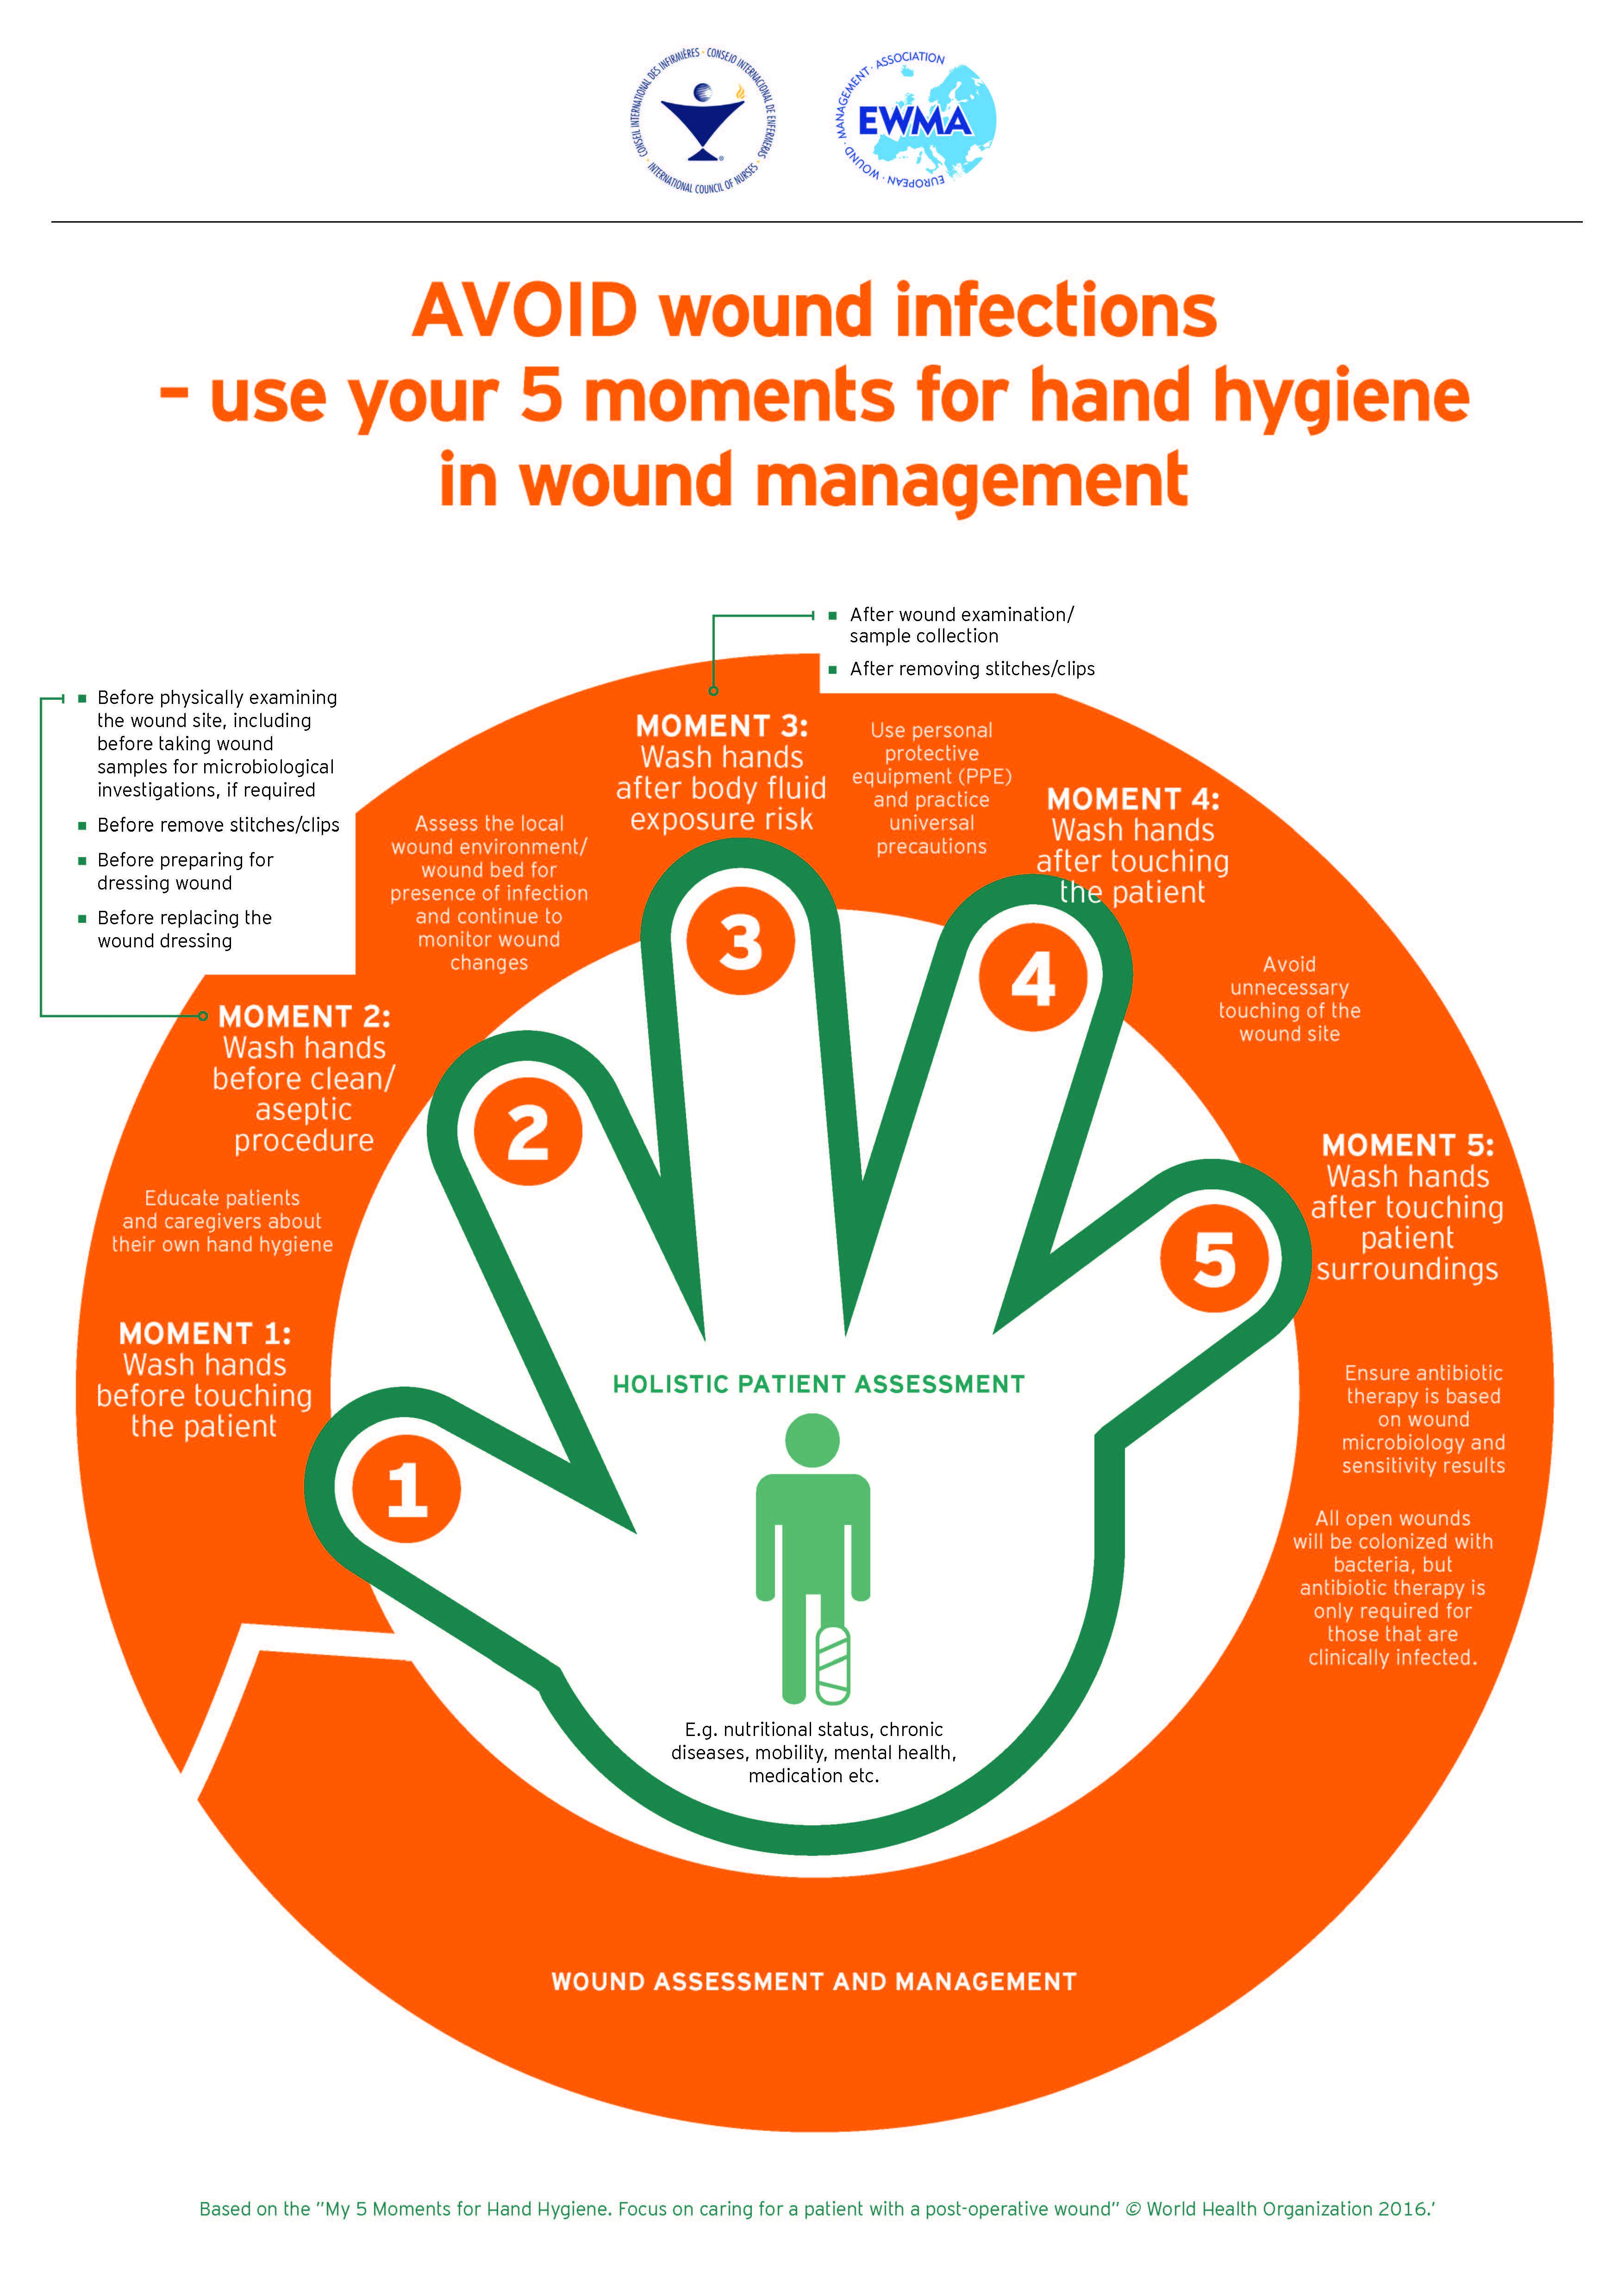 hand hygiene of clinical staff Engaged staff, physicians, and administration by developing a hand hygiene pledge banner that was signed by all hospital and unit leaders/champions and posted on the unit developed hand hygiene champion posters depicting staff and physicians who work on the unit.